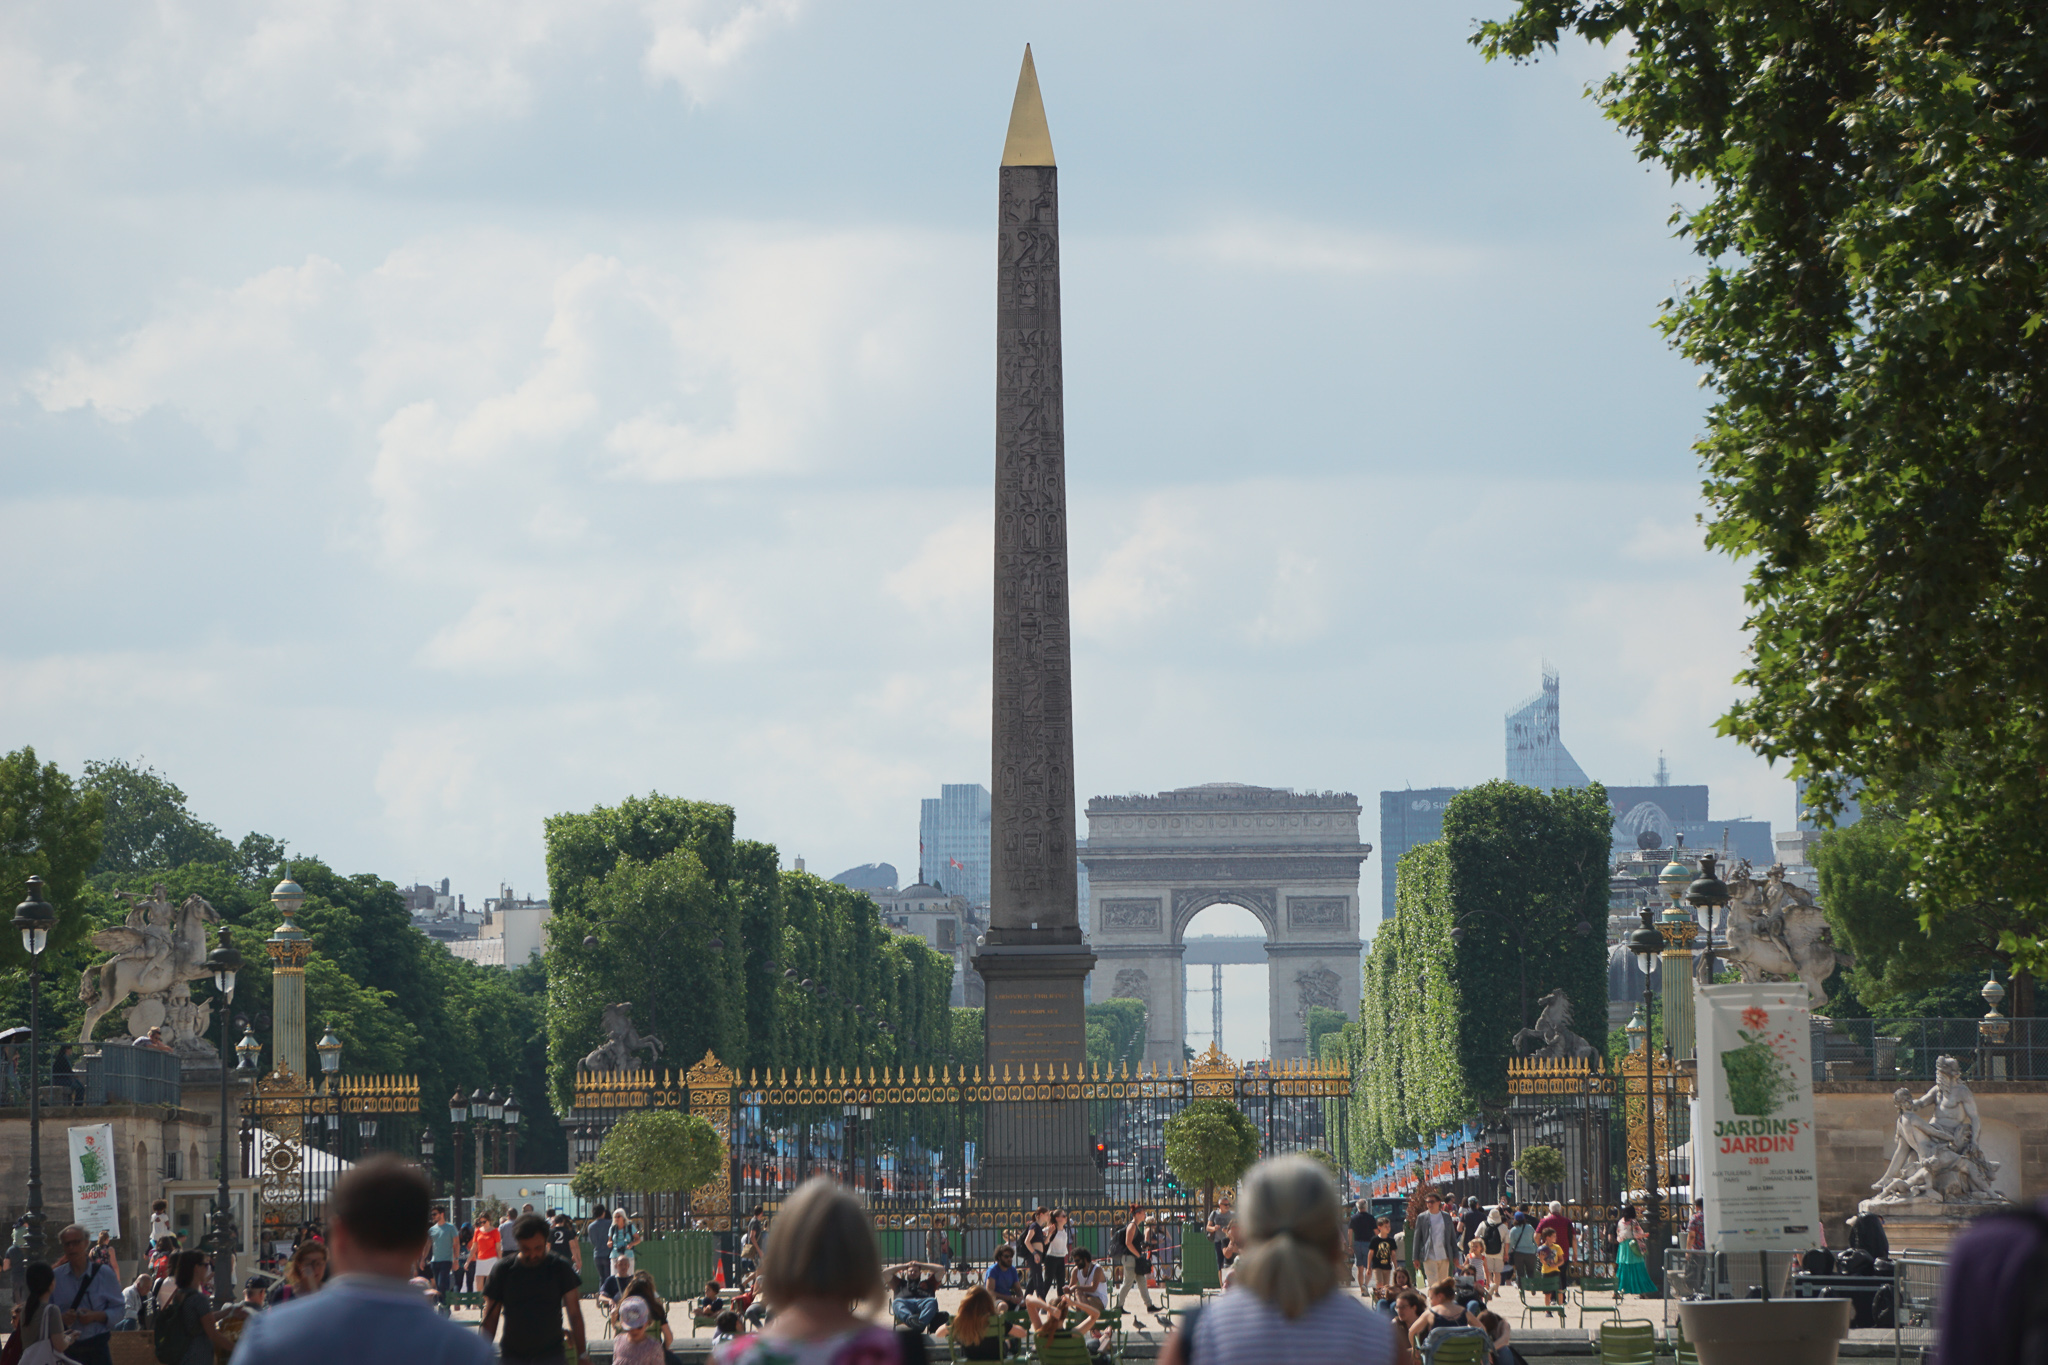 Luxor Obelisk in the middle of Place de la Concorde, at the end of Tuilieres Garden